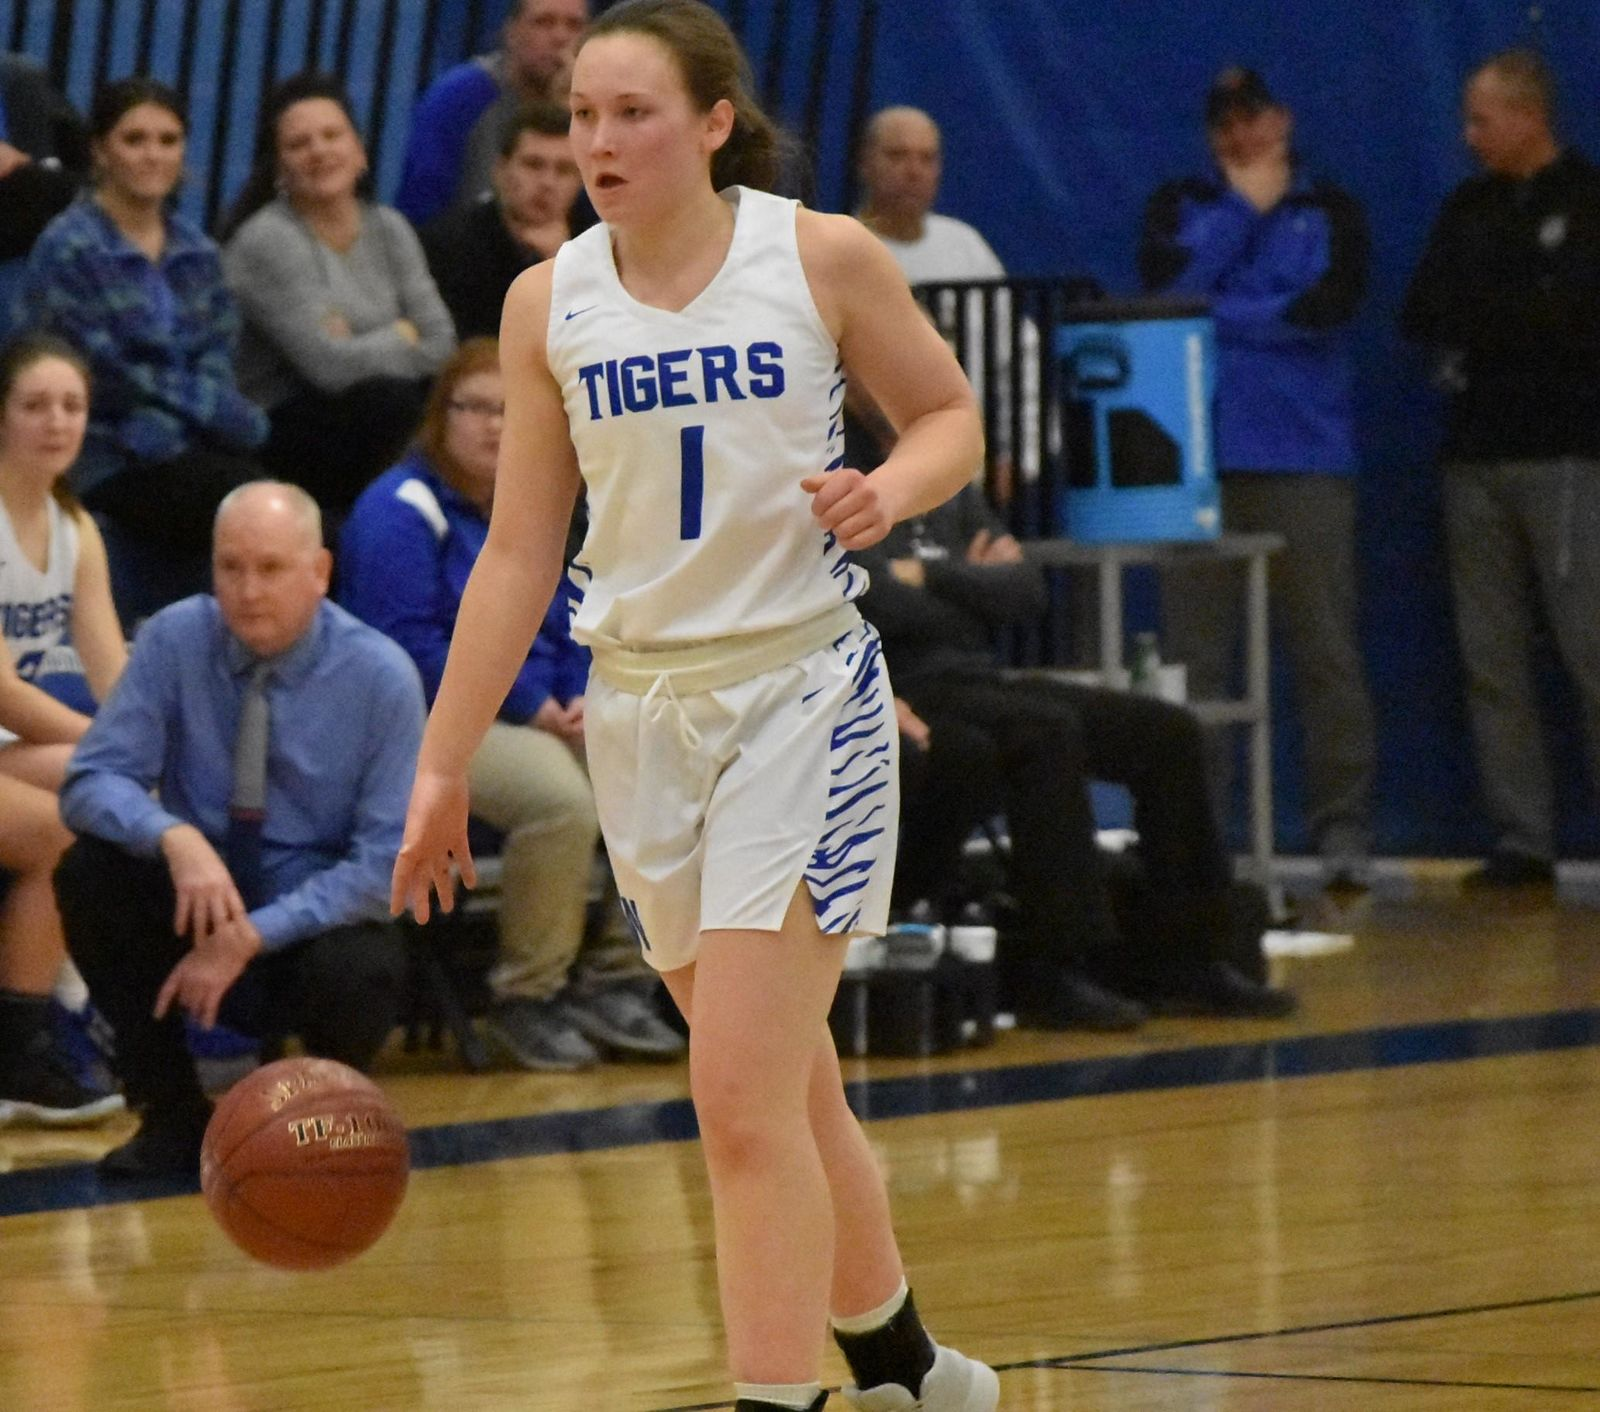 Wrightstown's Bridget Froehlke is a FOX 11 all-area first-team selection. (Doug Ritchay/WLUK)